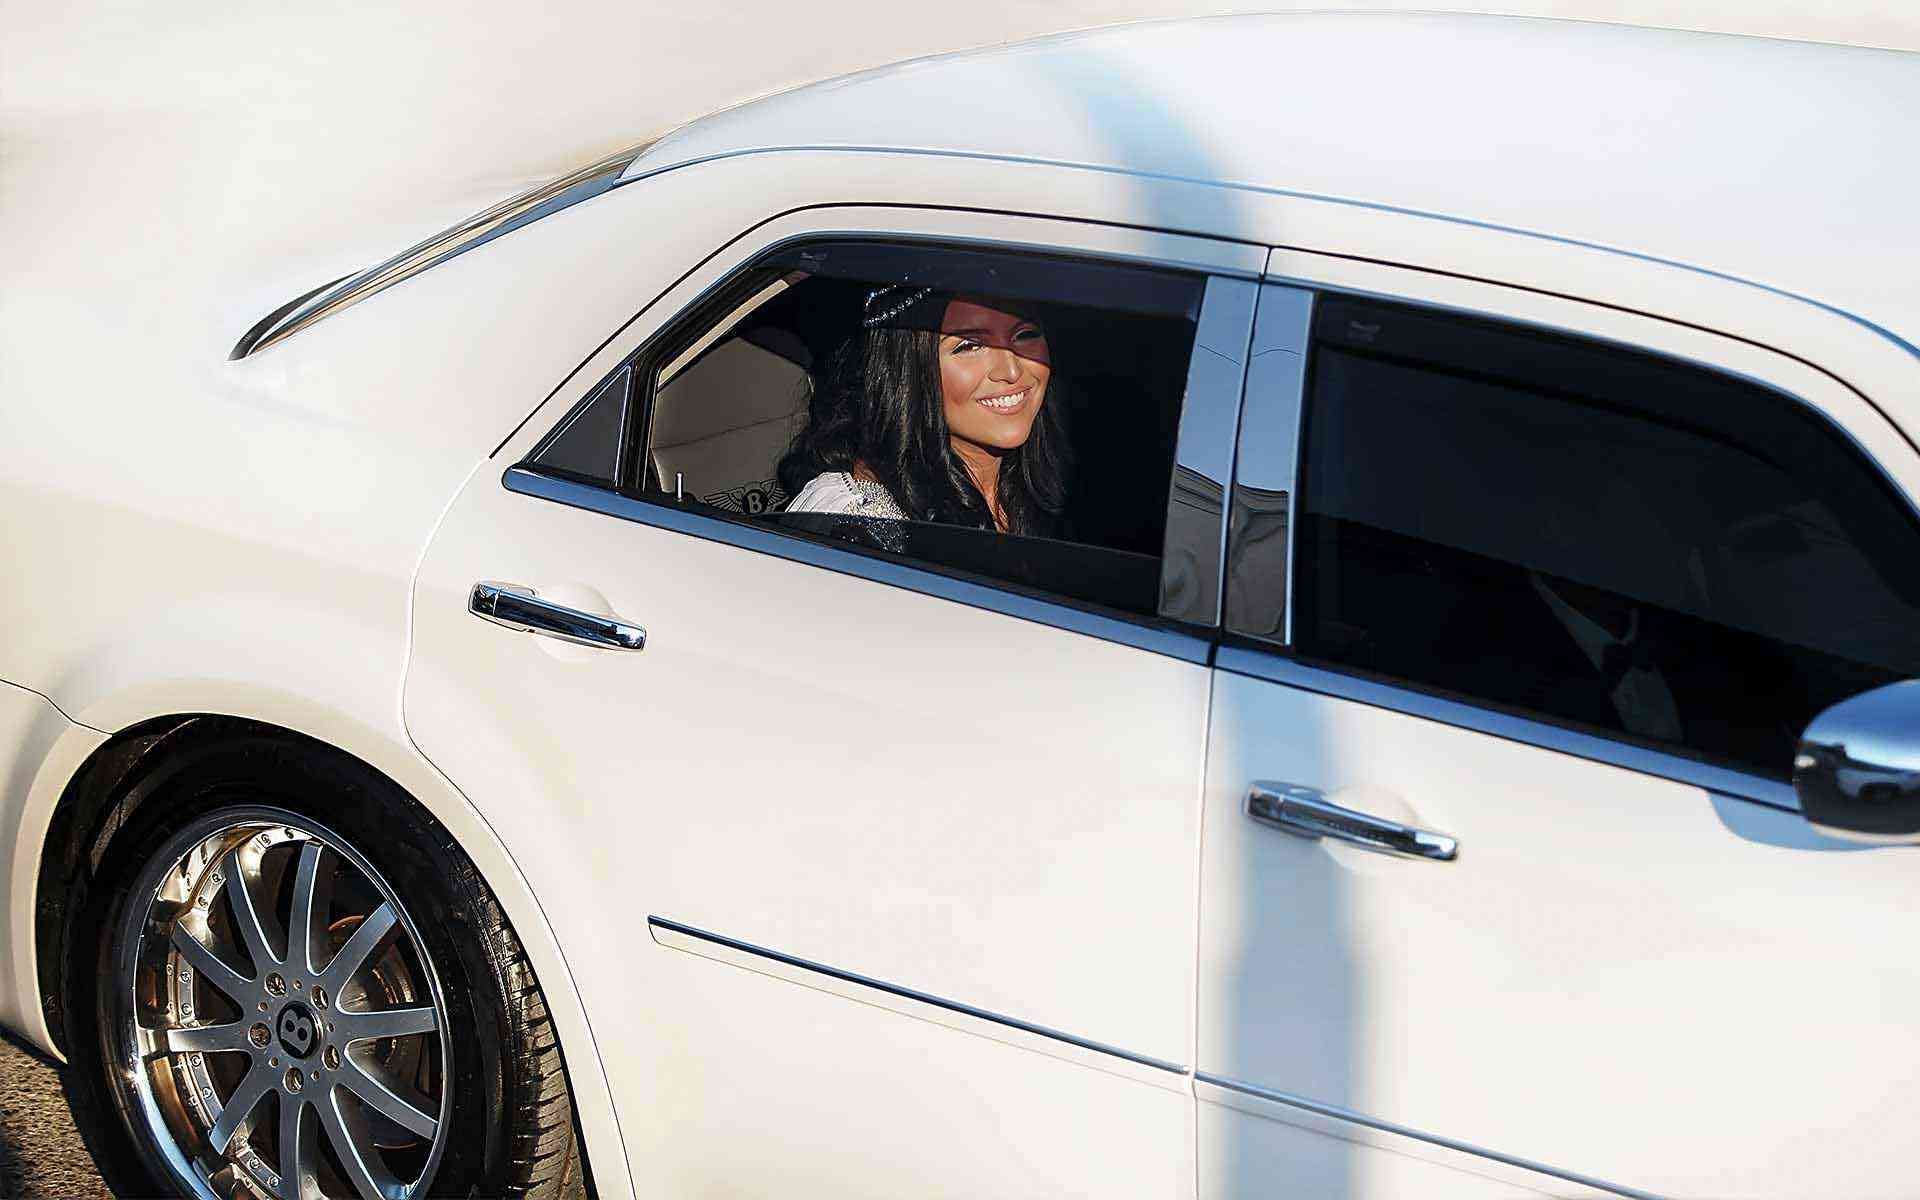 The-Beautiful-Bride-Has-Just-Arrived-In-Church-With-The-White-Bentley